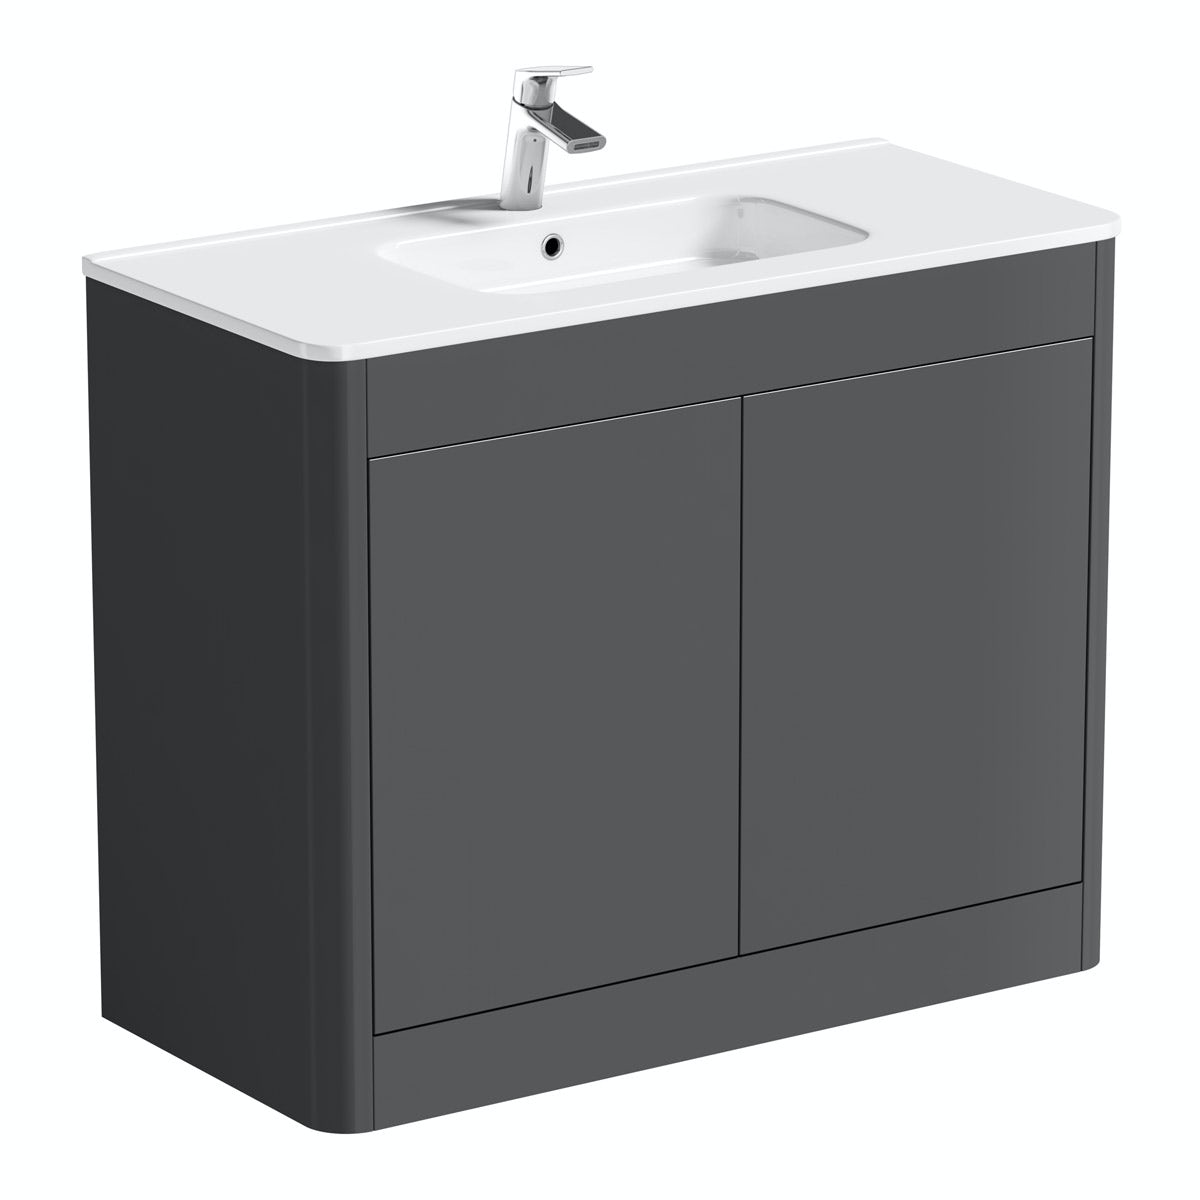 Mode Carter slate vanity unit and basin 1000mm